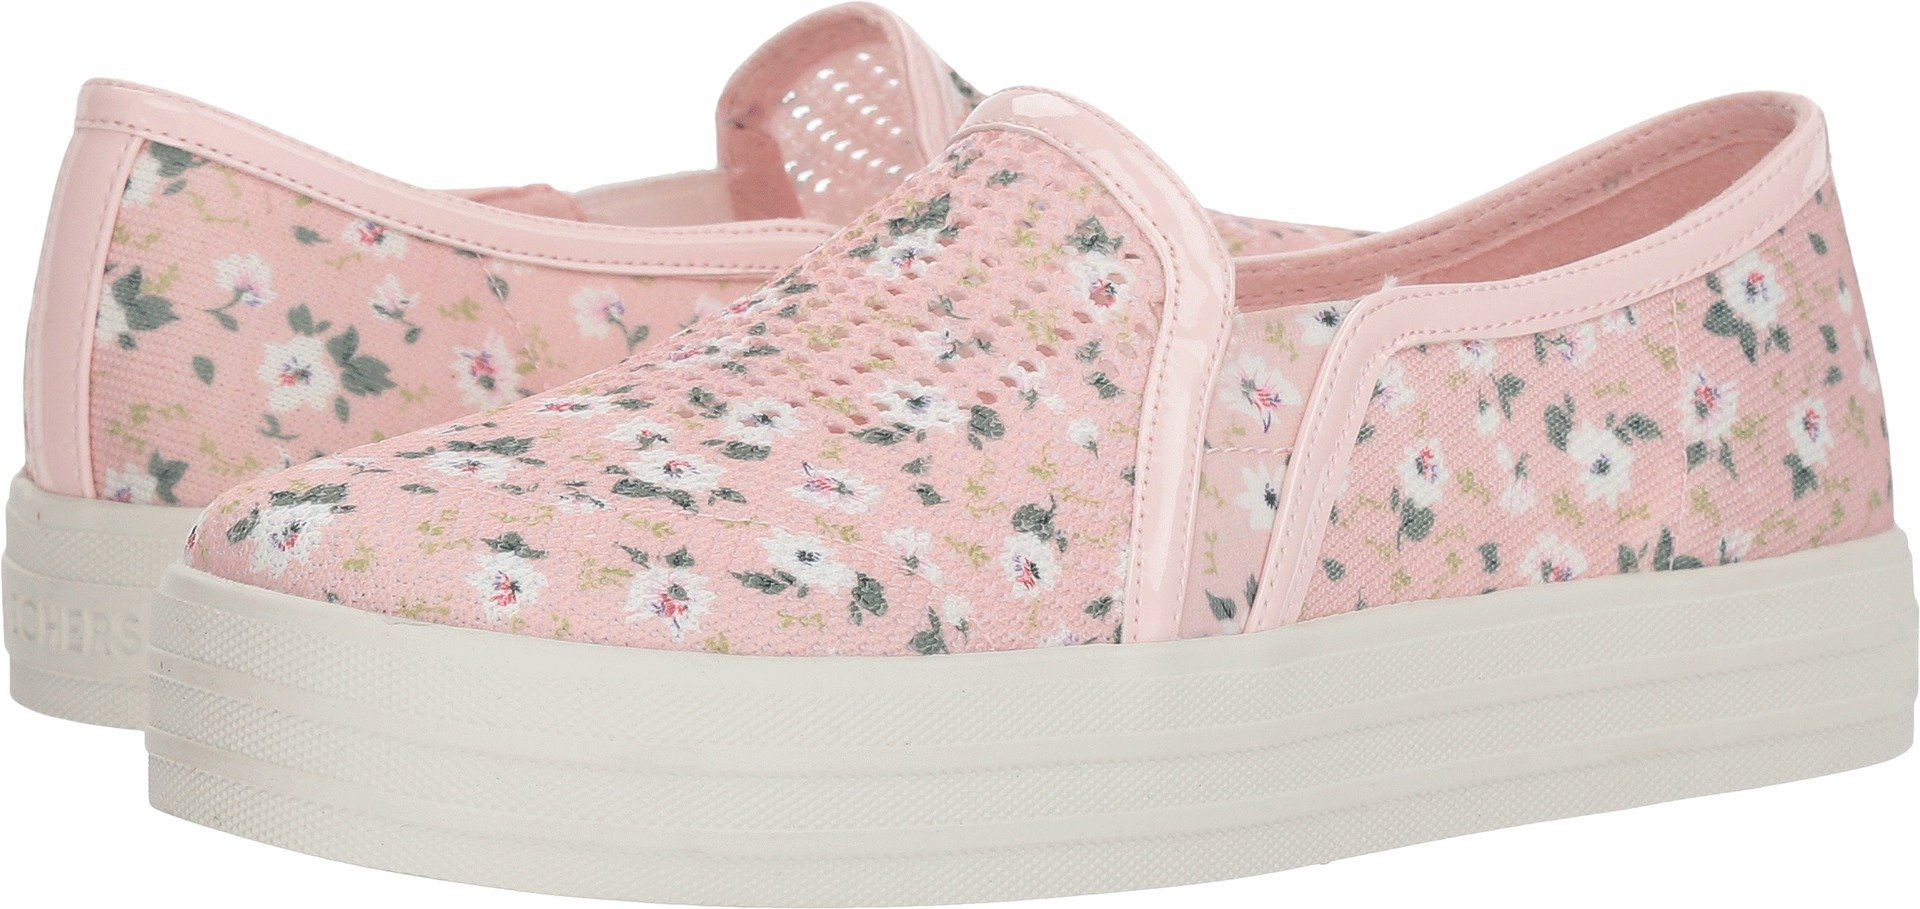 Skechers Double up Ditsy Darling Womens Slip On Sneakers Light Pink 7